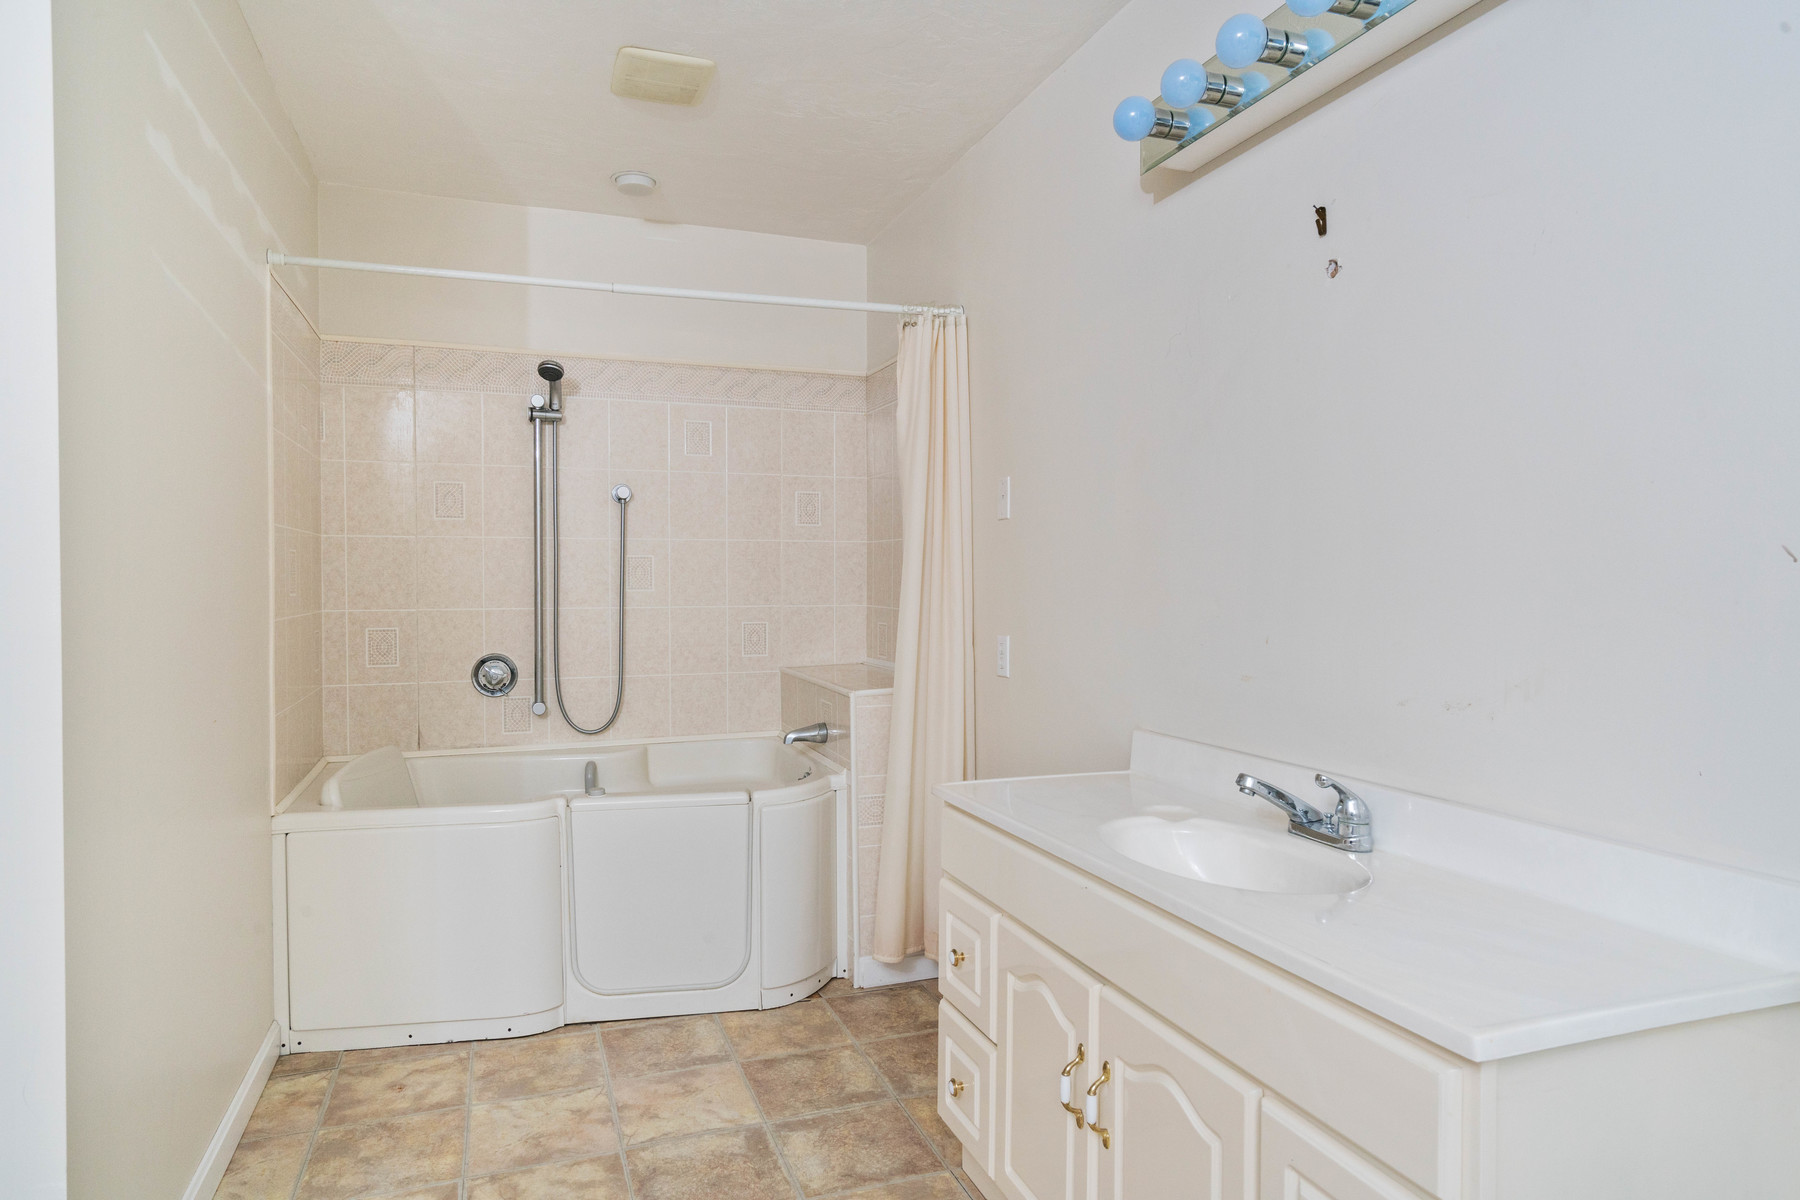 Additional photo for property listing at 60 SCHOOLMASTERS LANE: PRECINCT I 60 SCHOOLMASTERS LANE: PRECINCT I Dedham, Массачусетс 02026 Соединенные Штаты